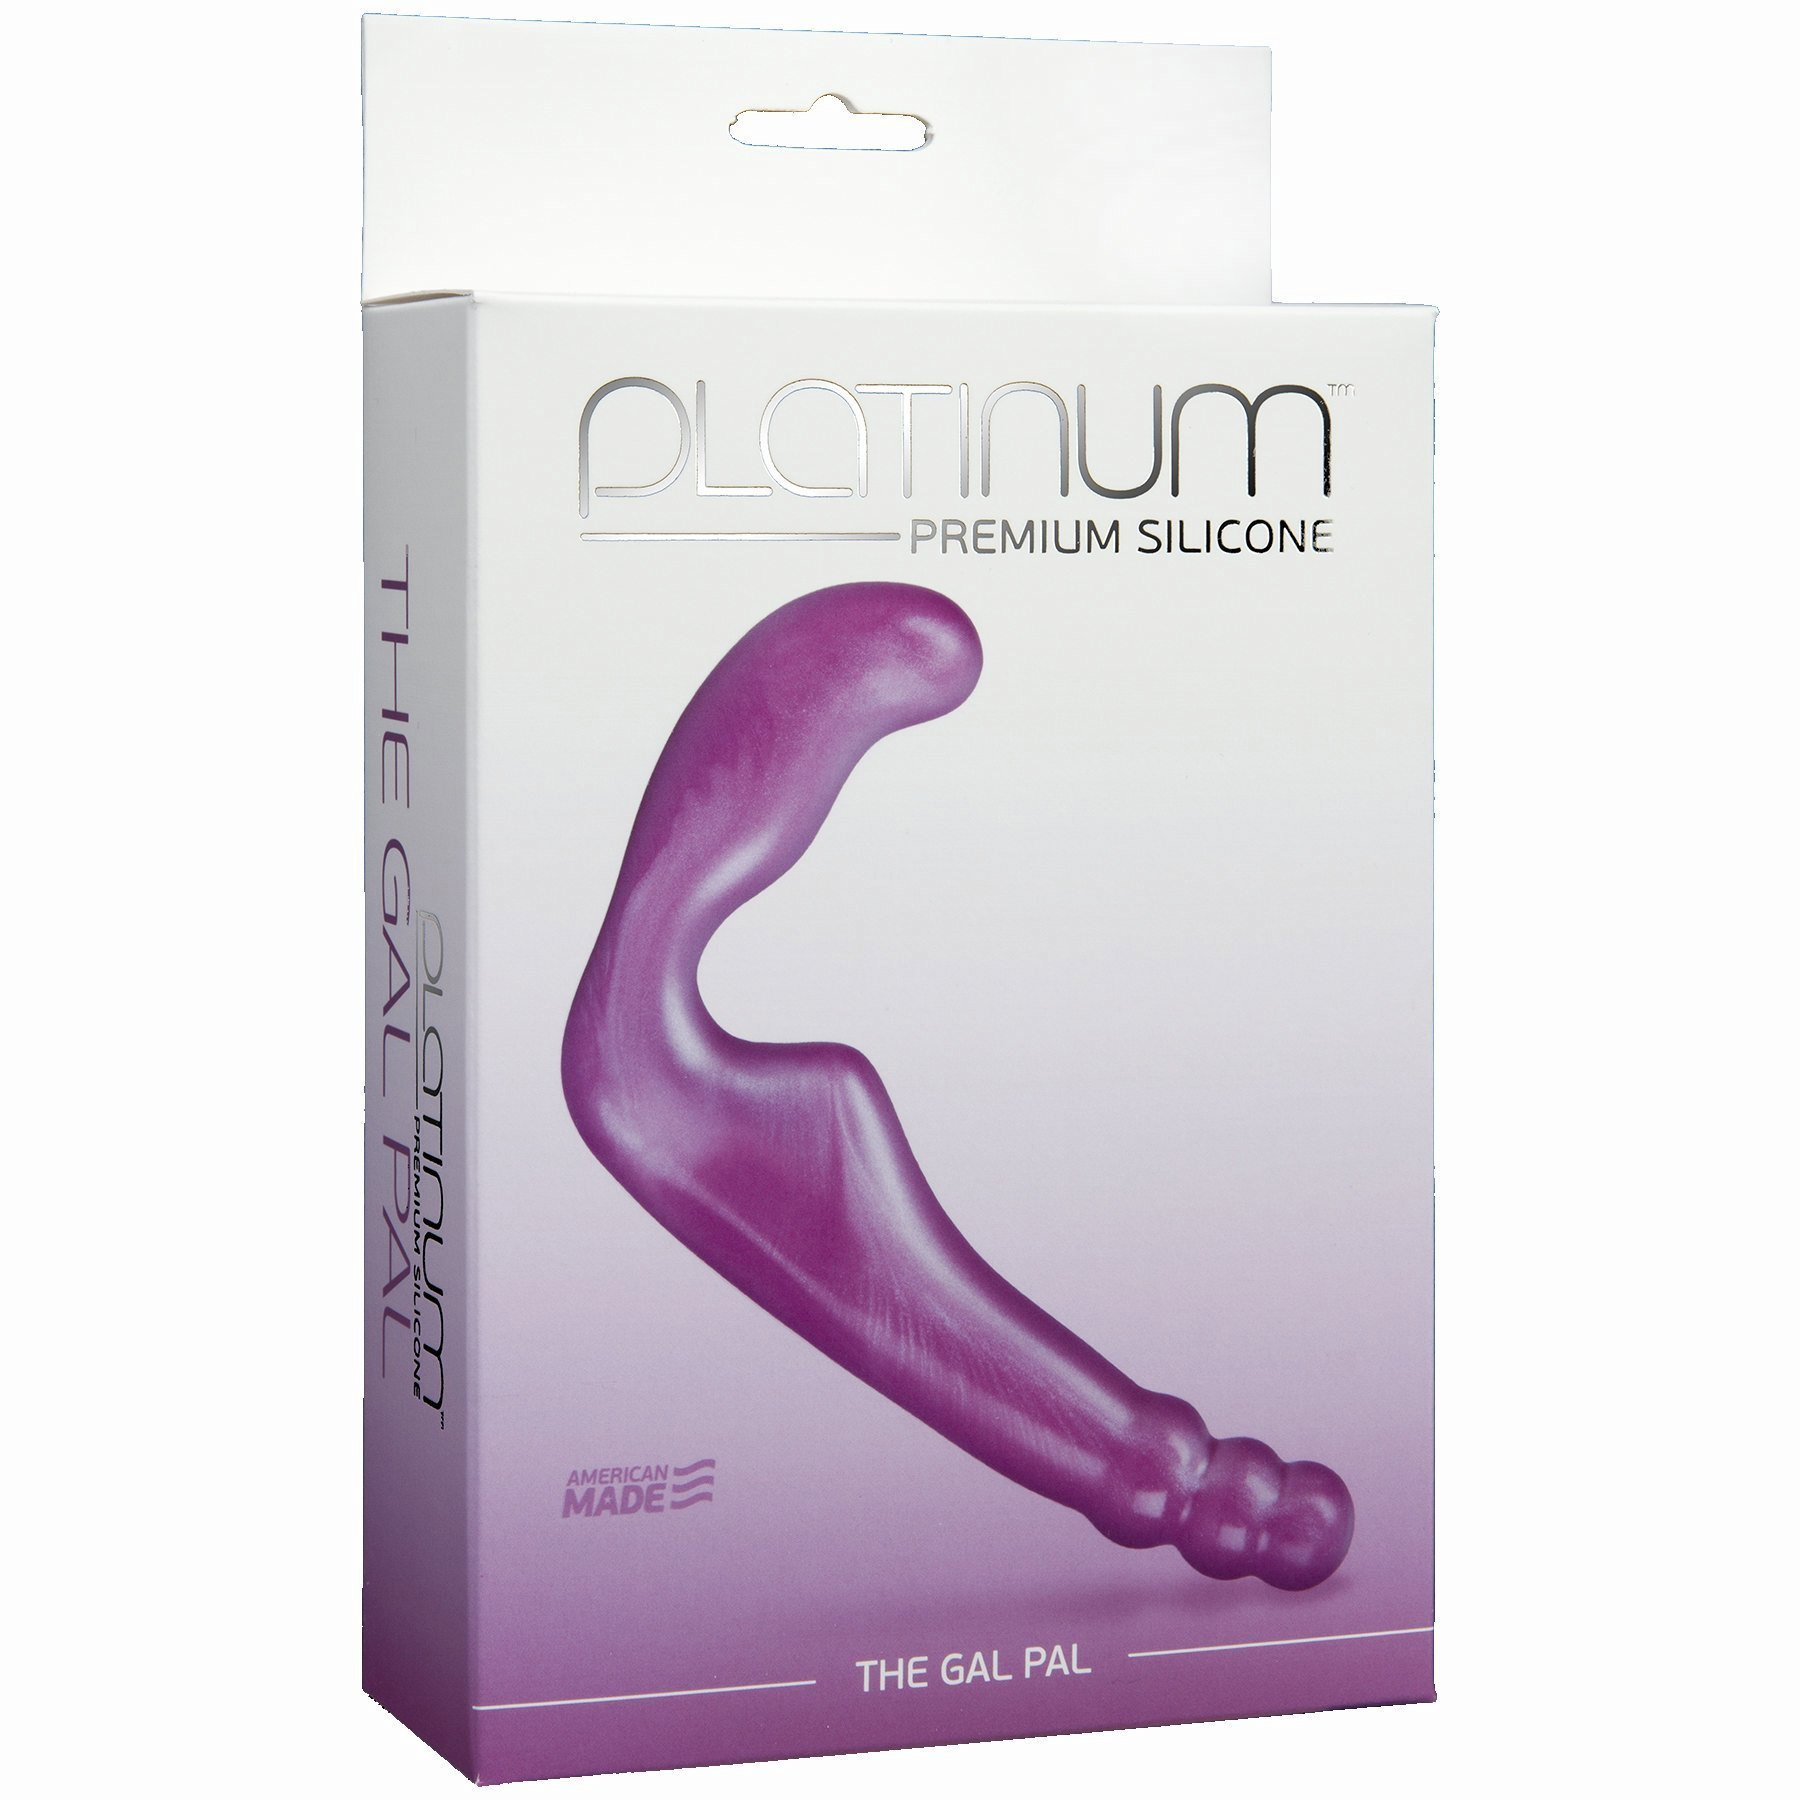 Platinum Silicone Gal Pal Strapless Strap-On Dong 8 Inch Purple